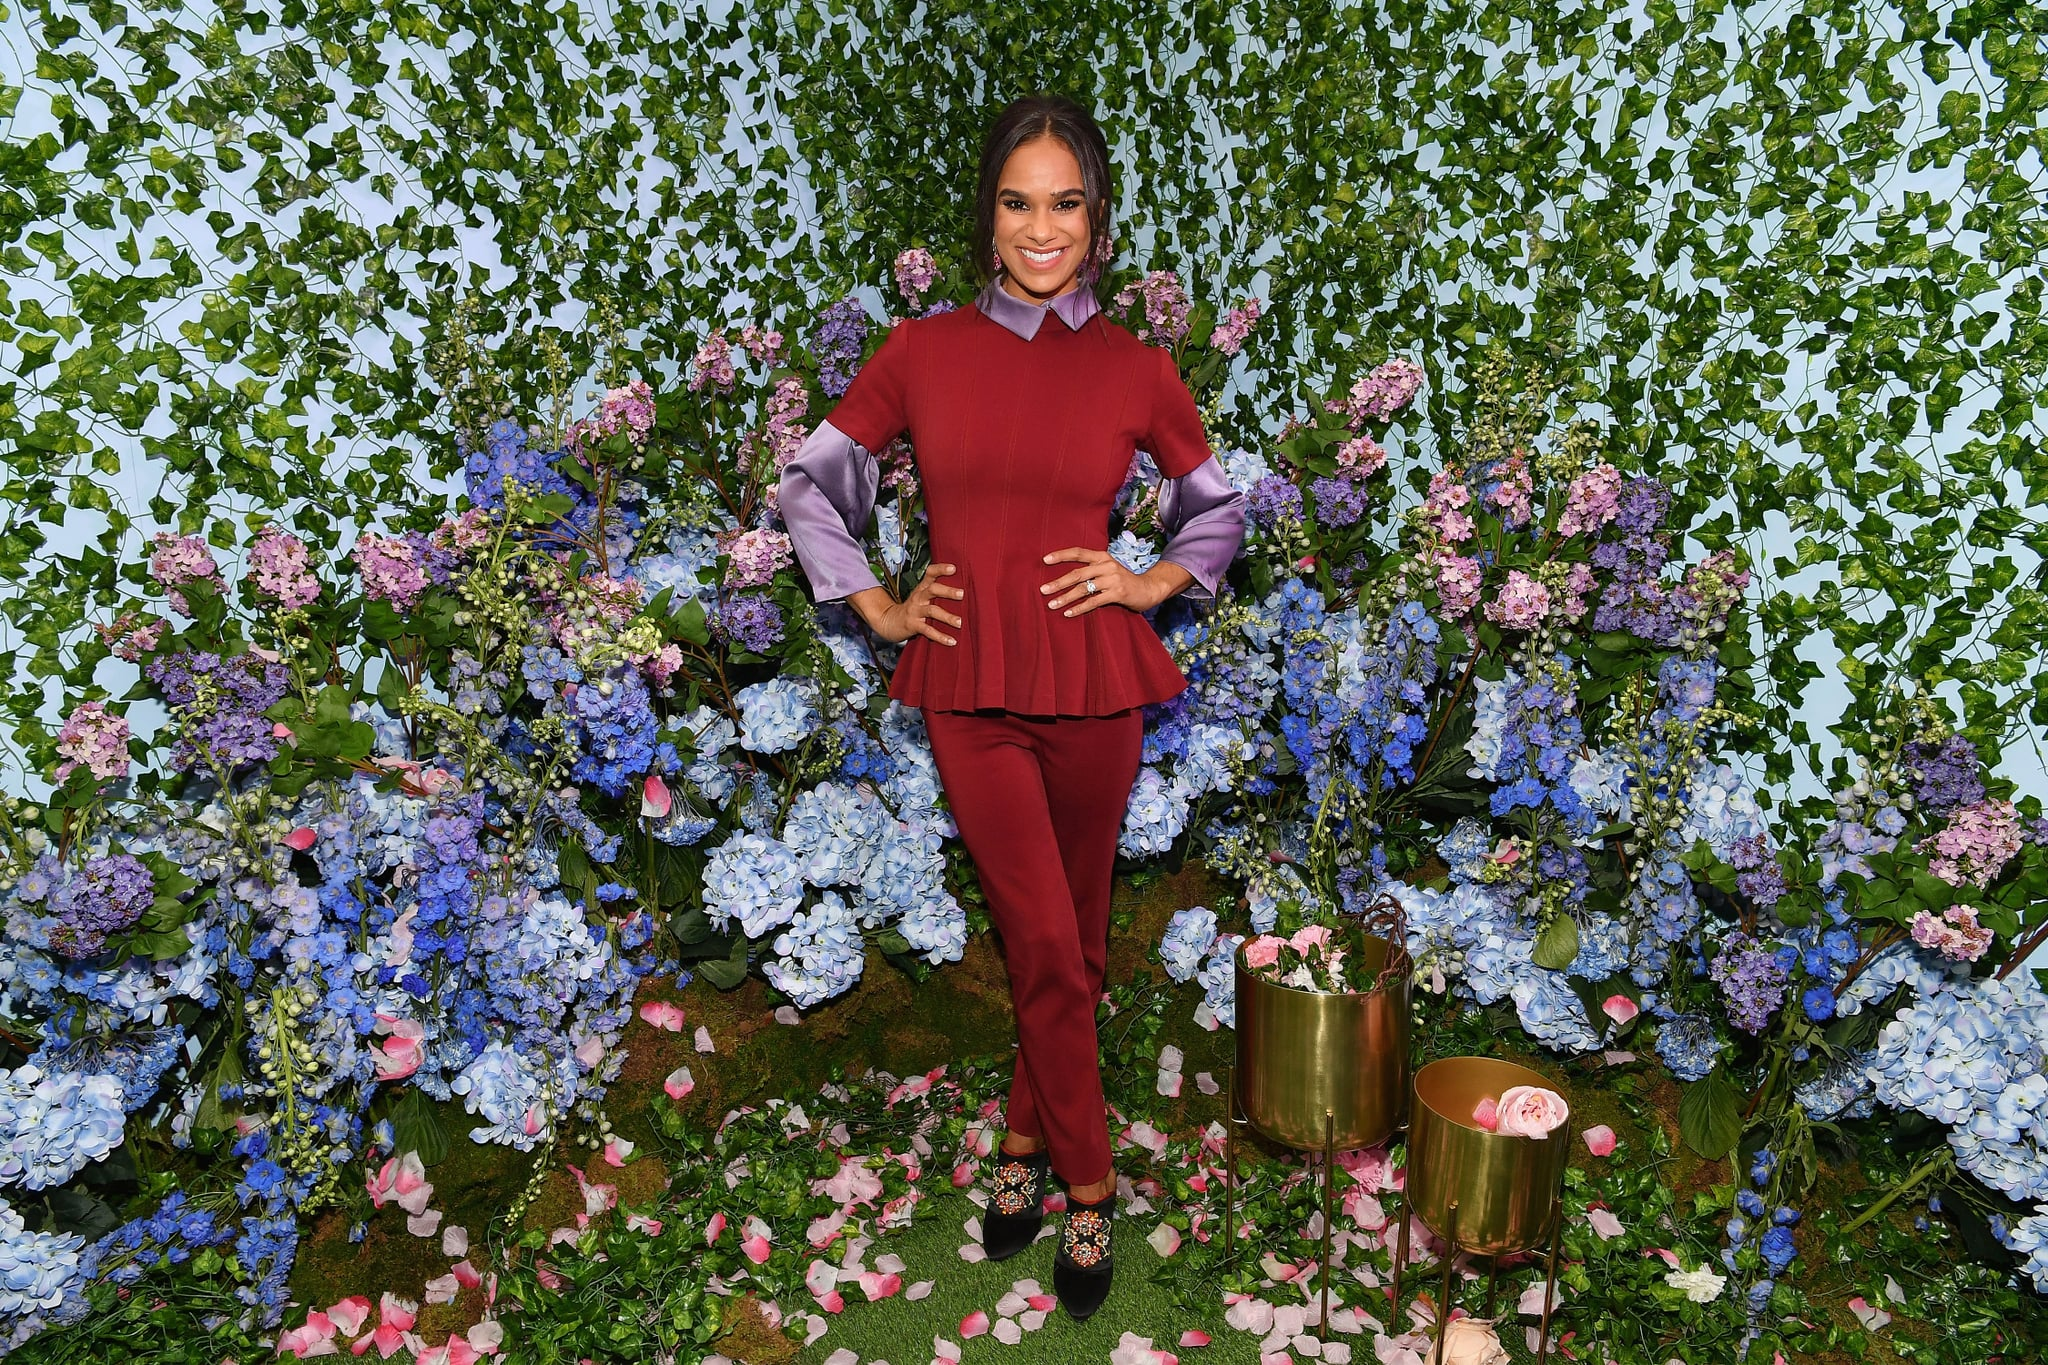 NEW YORK, NY - OCTOBER 22:  Misty Copeland attends the Disney and POPSUGAR celebration of 'The Nutcracker and the Four Realms' with the film's stars Mackenzie Foy and Misty Copeland at an immersive activation, Journey Into The Four Realms, at The Oculus at Westfield World Trade Center on October 22, 2018 in New York City, United States.  (Photo by Dia Dipasupil/Getty Images for Disney Studios)